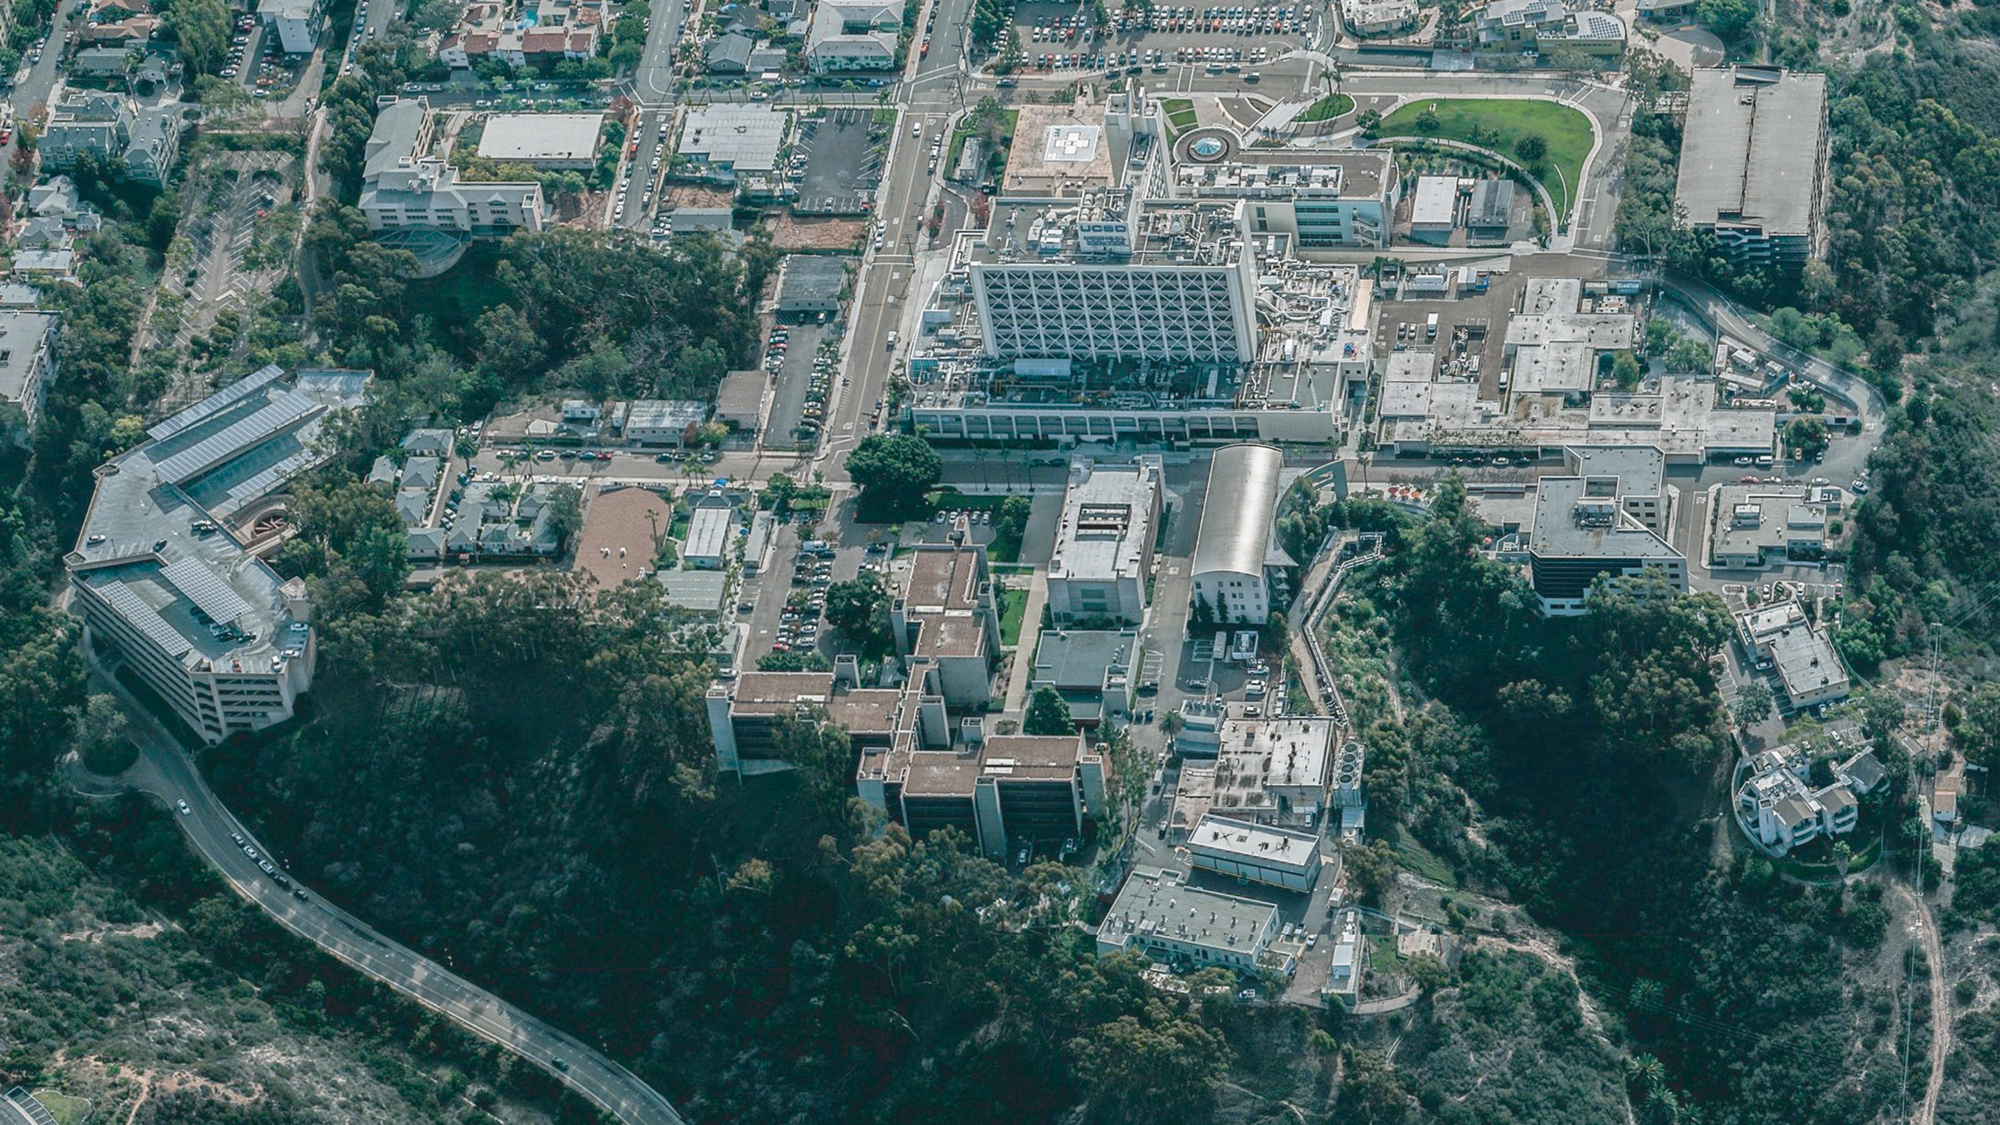 UC San Diego Hillcrest Programmatic EIR for Long-Range Development Plan